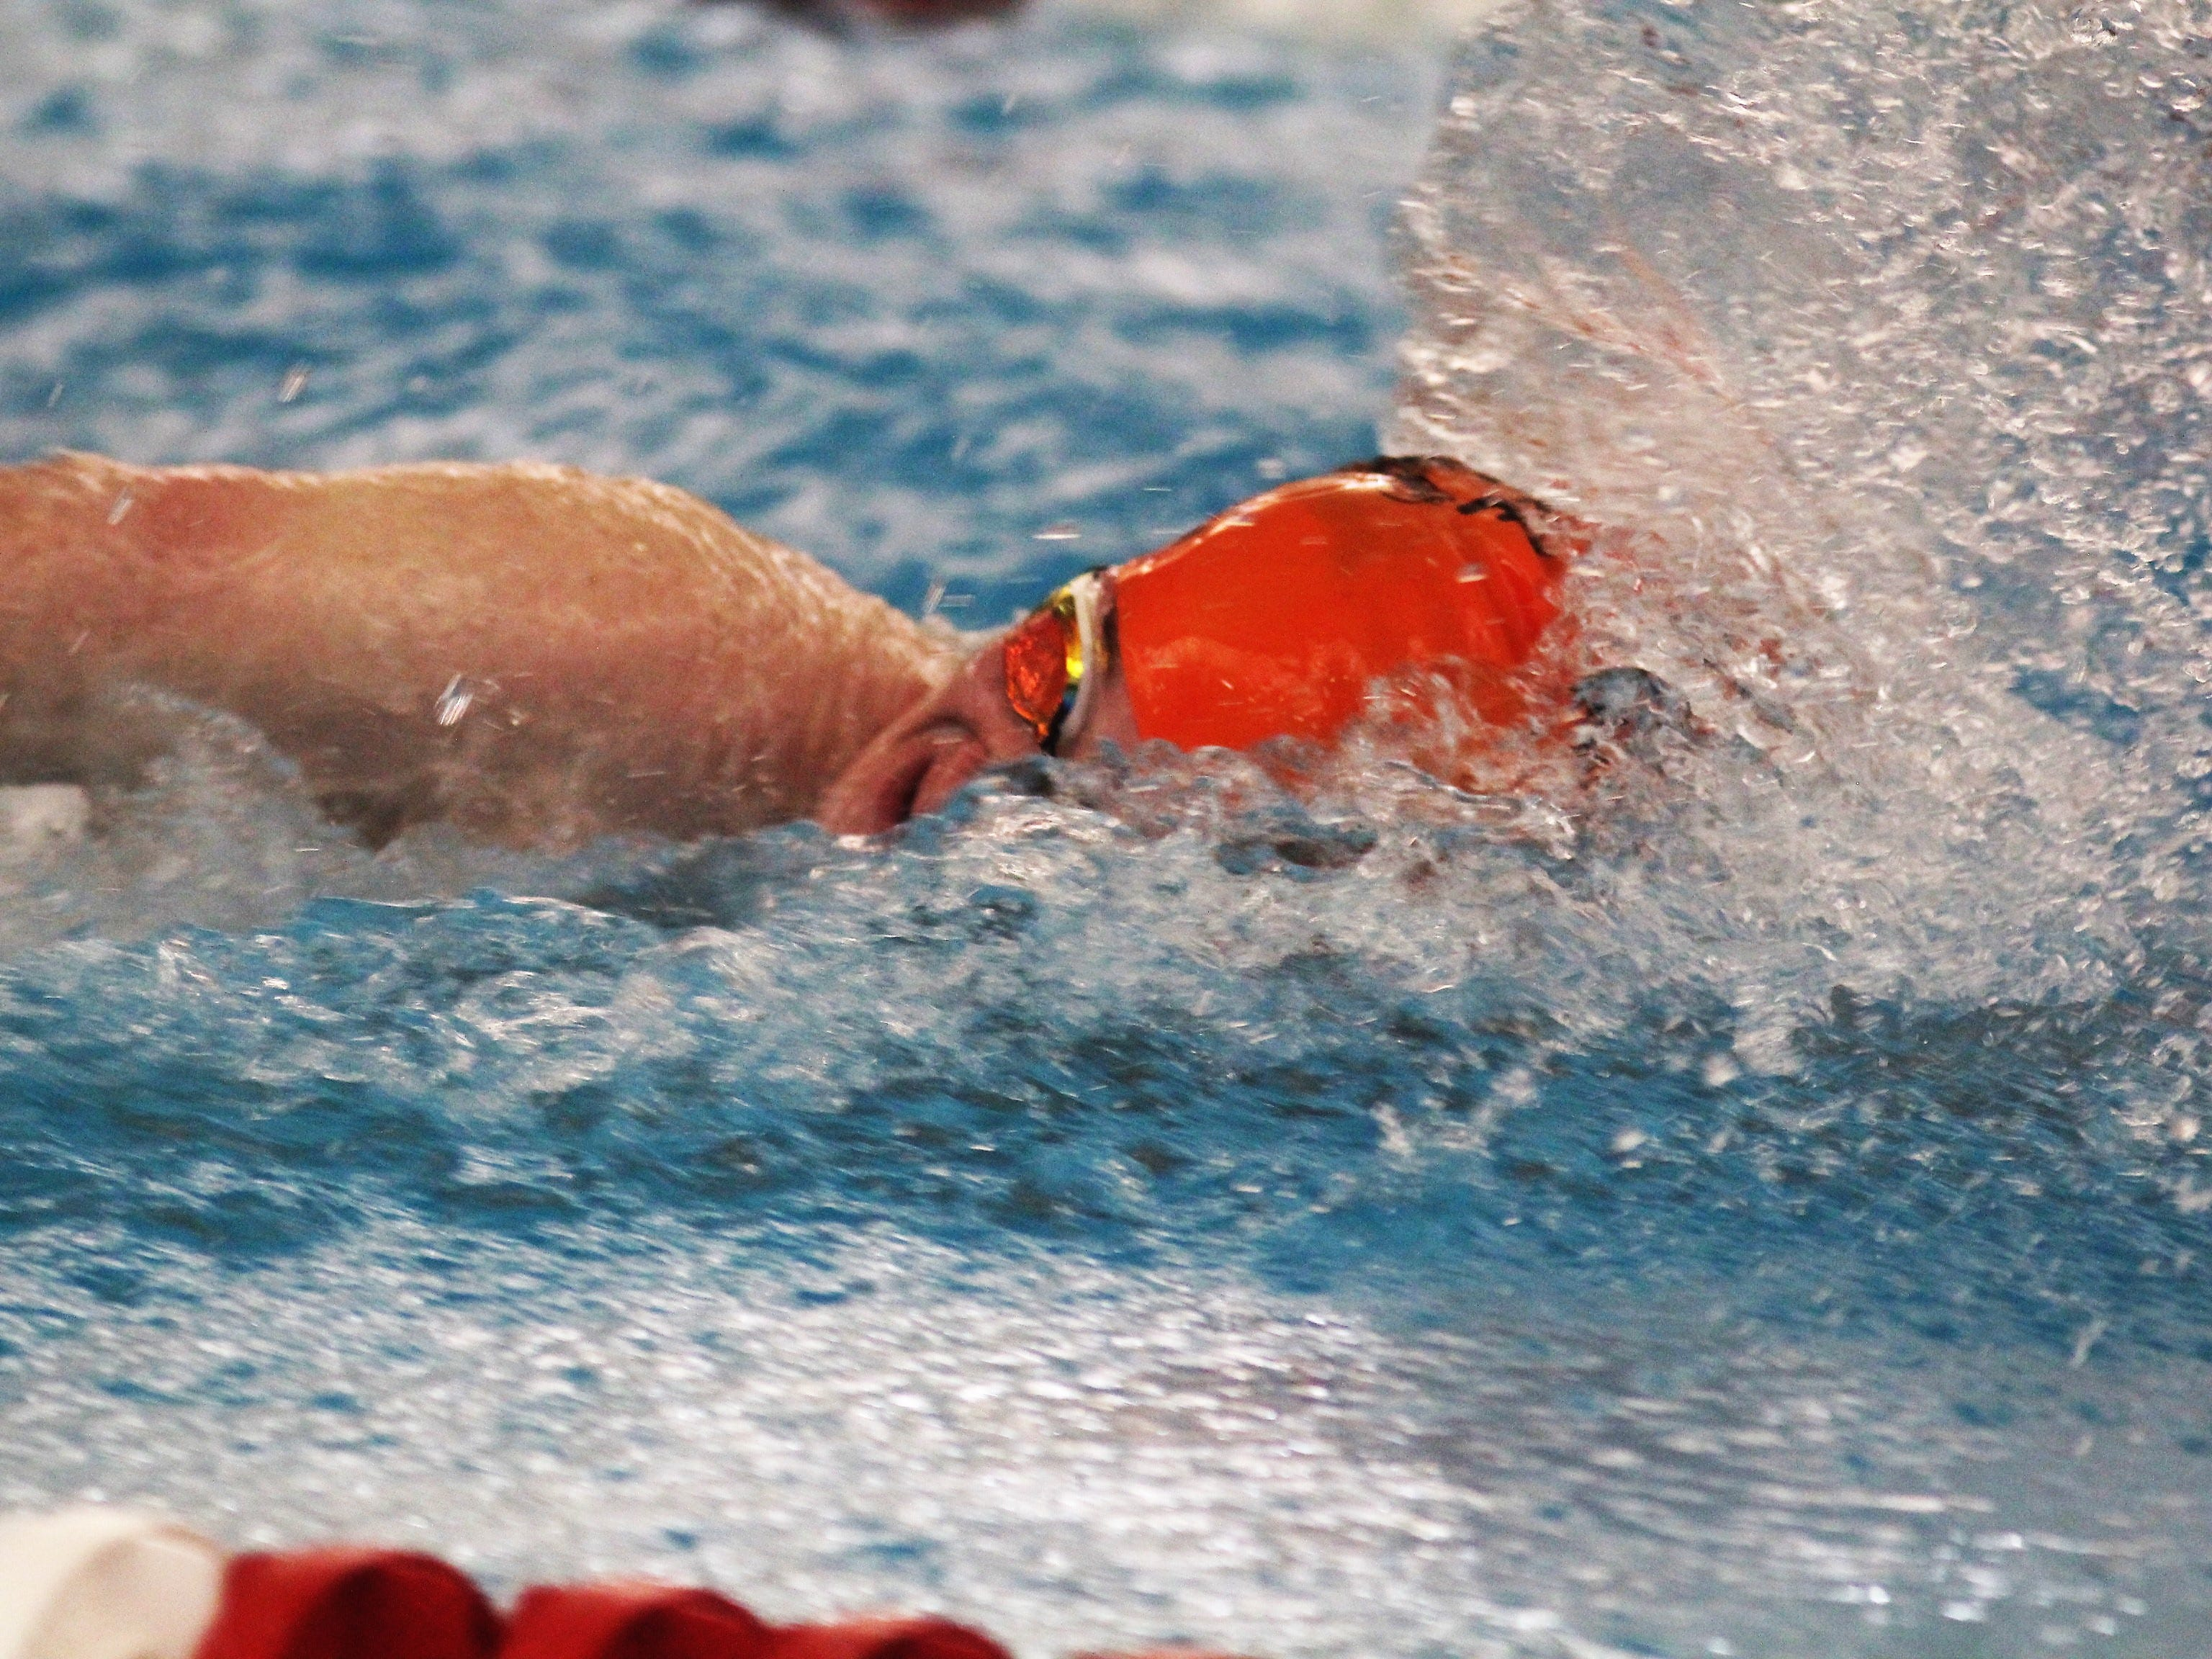 Ryle sophomore Benett Koenigsknecht in the 200 freestyle during the KHSAA state boys swimming and diving championship Feb. 22, 2019 at the University of Louisville.